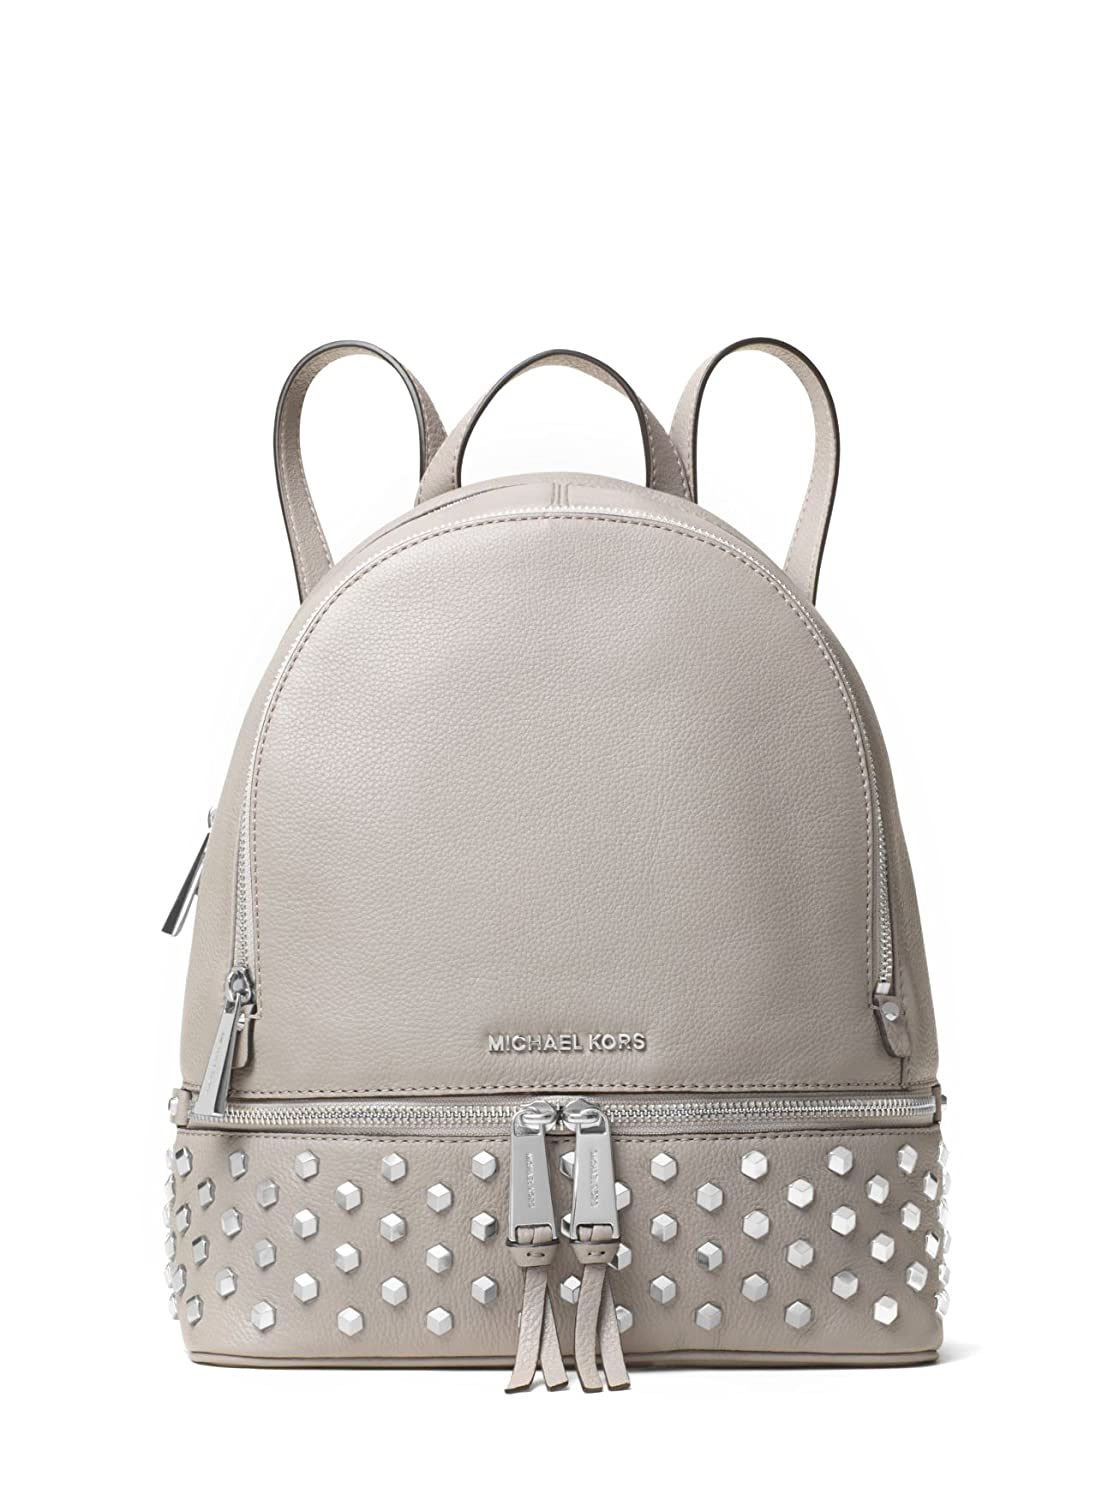 e3bfedd8f9e5 MICHAEL MICHAEL KORS Rhea Medium Studded Leather Backpack (Pearl Grey):  Amazon.co.uk: Shoes & Bags